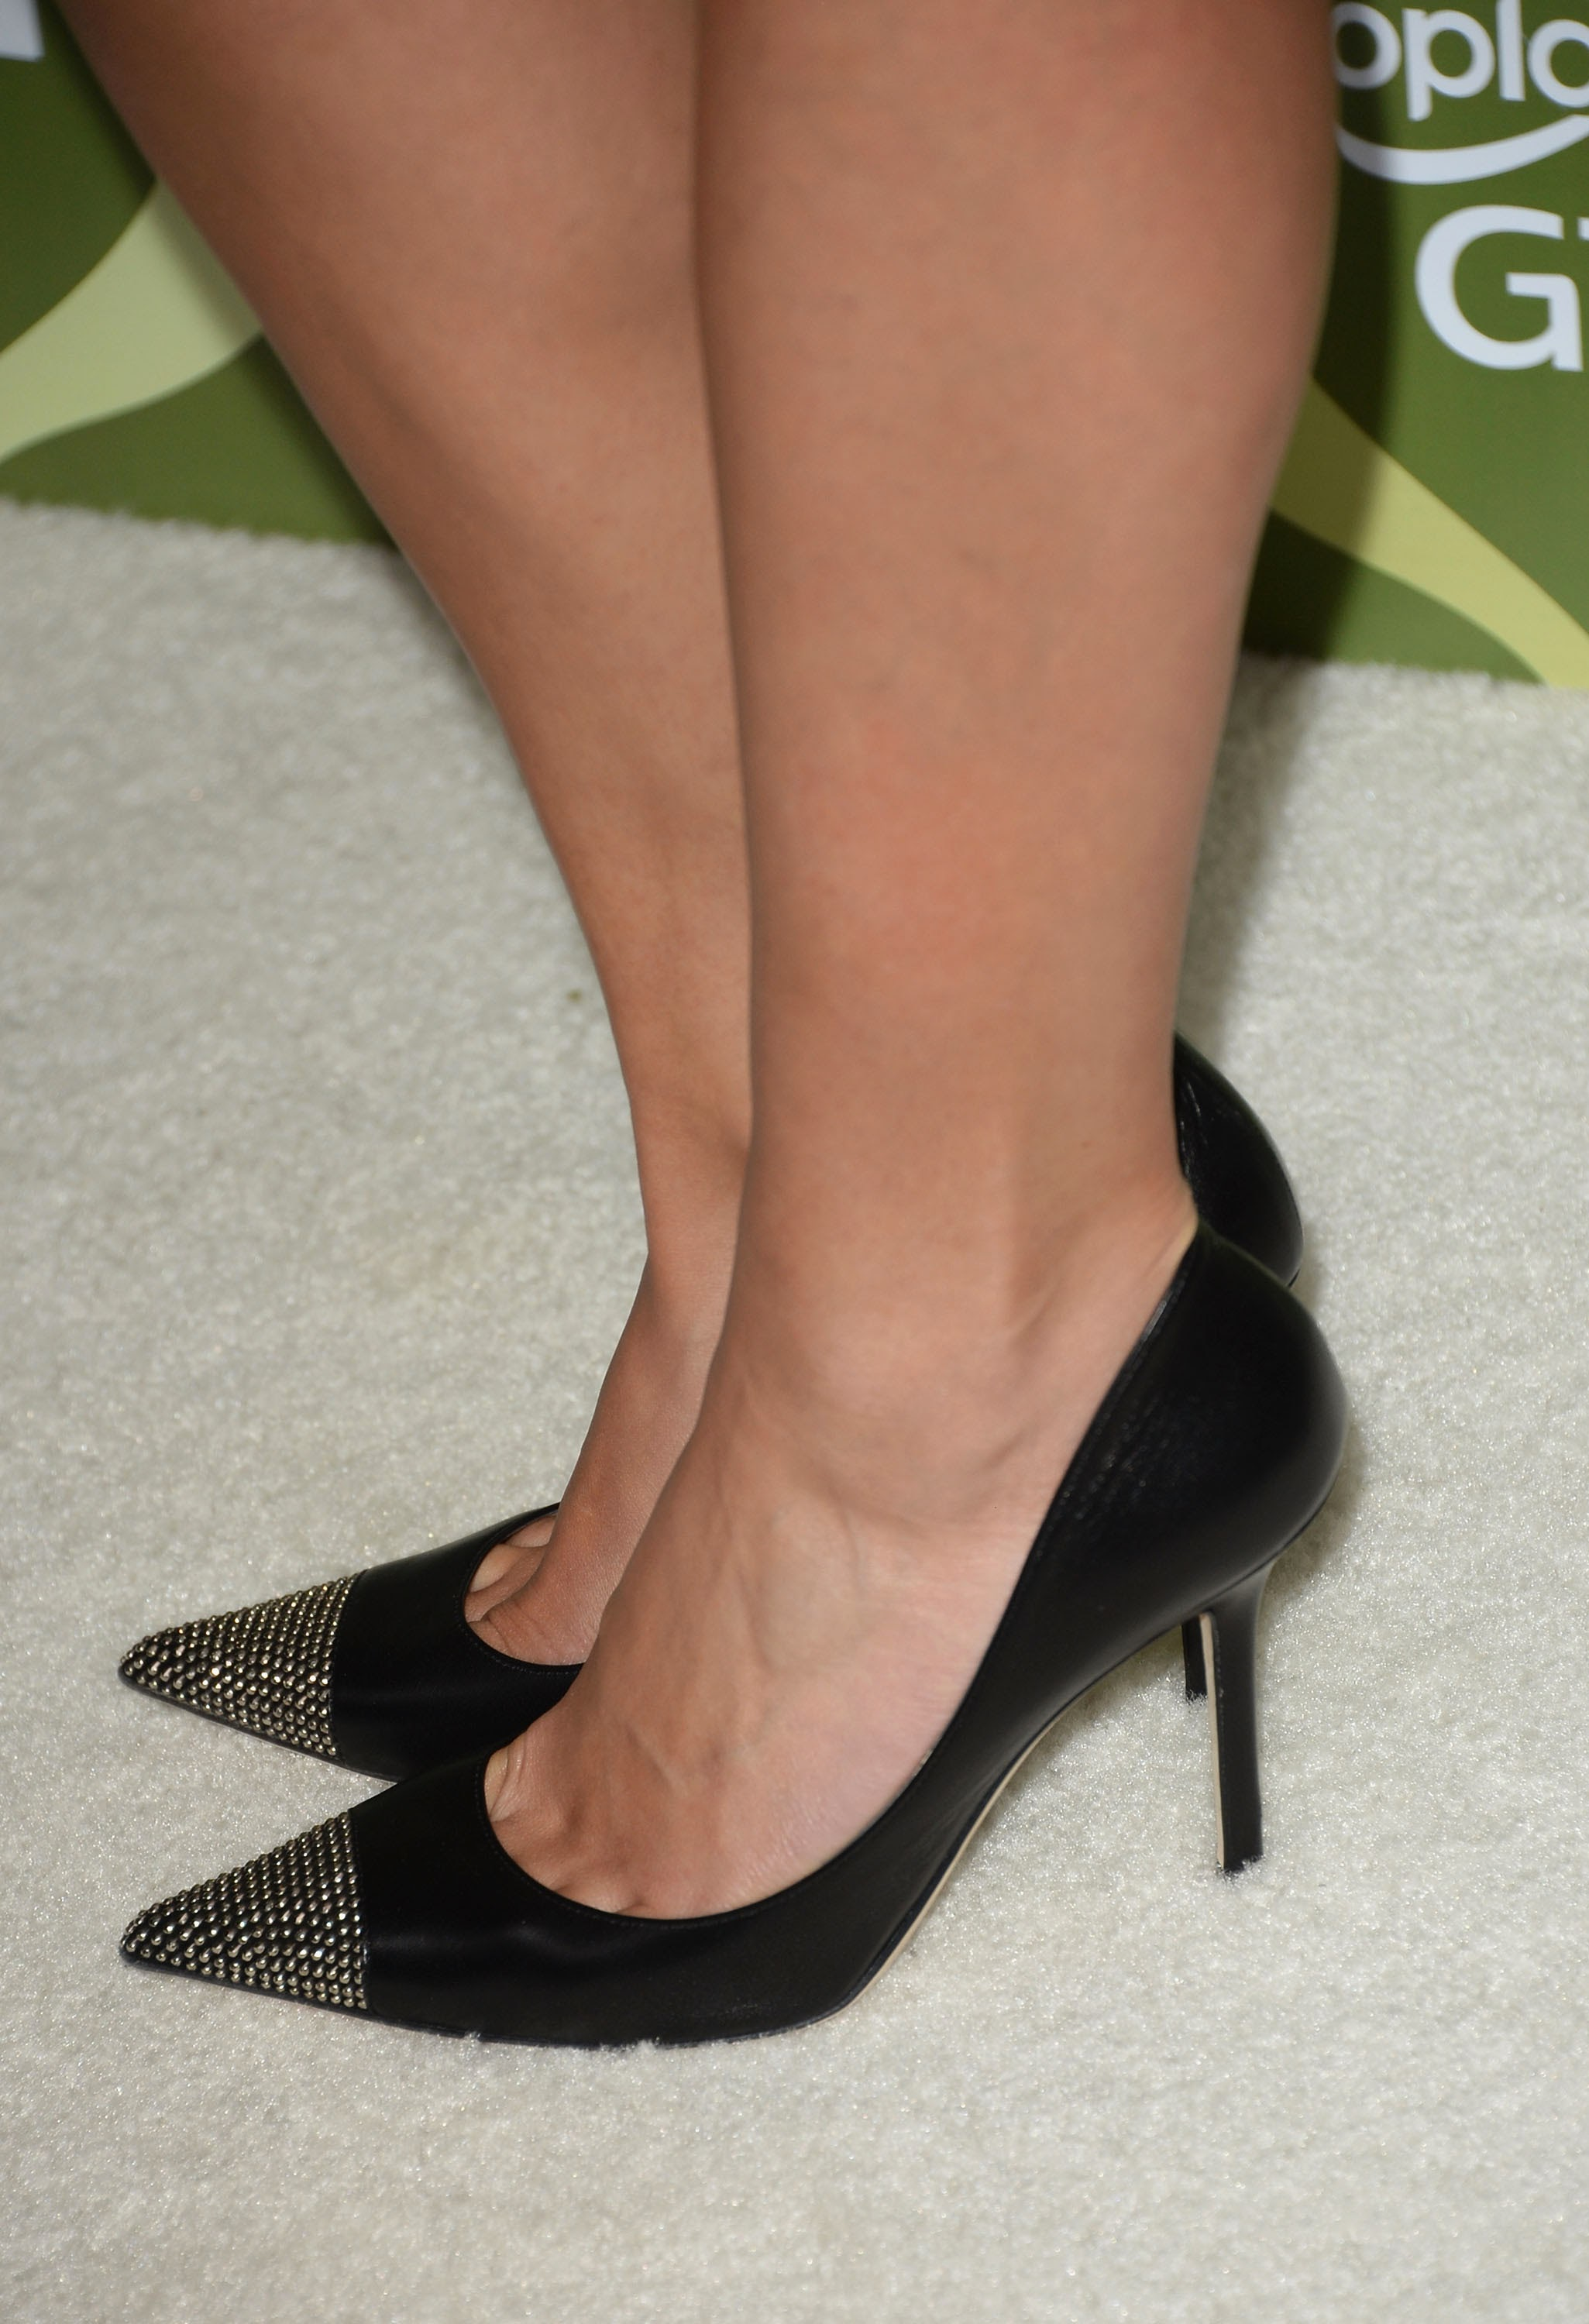 Shoes That Show Toe Cleavage